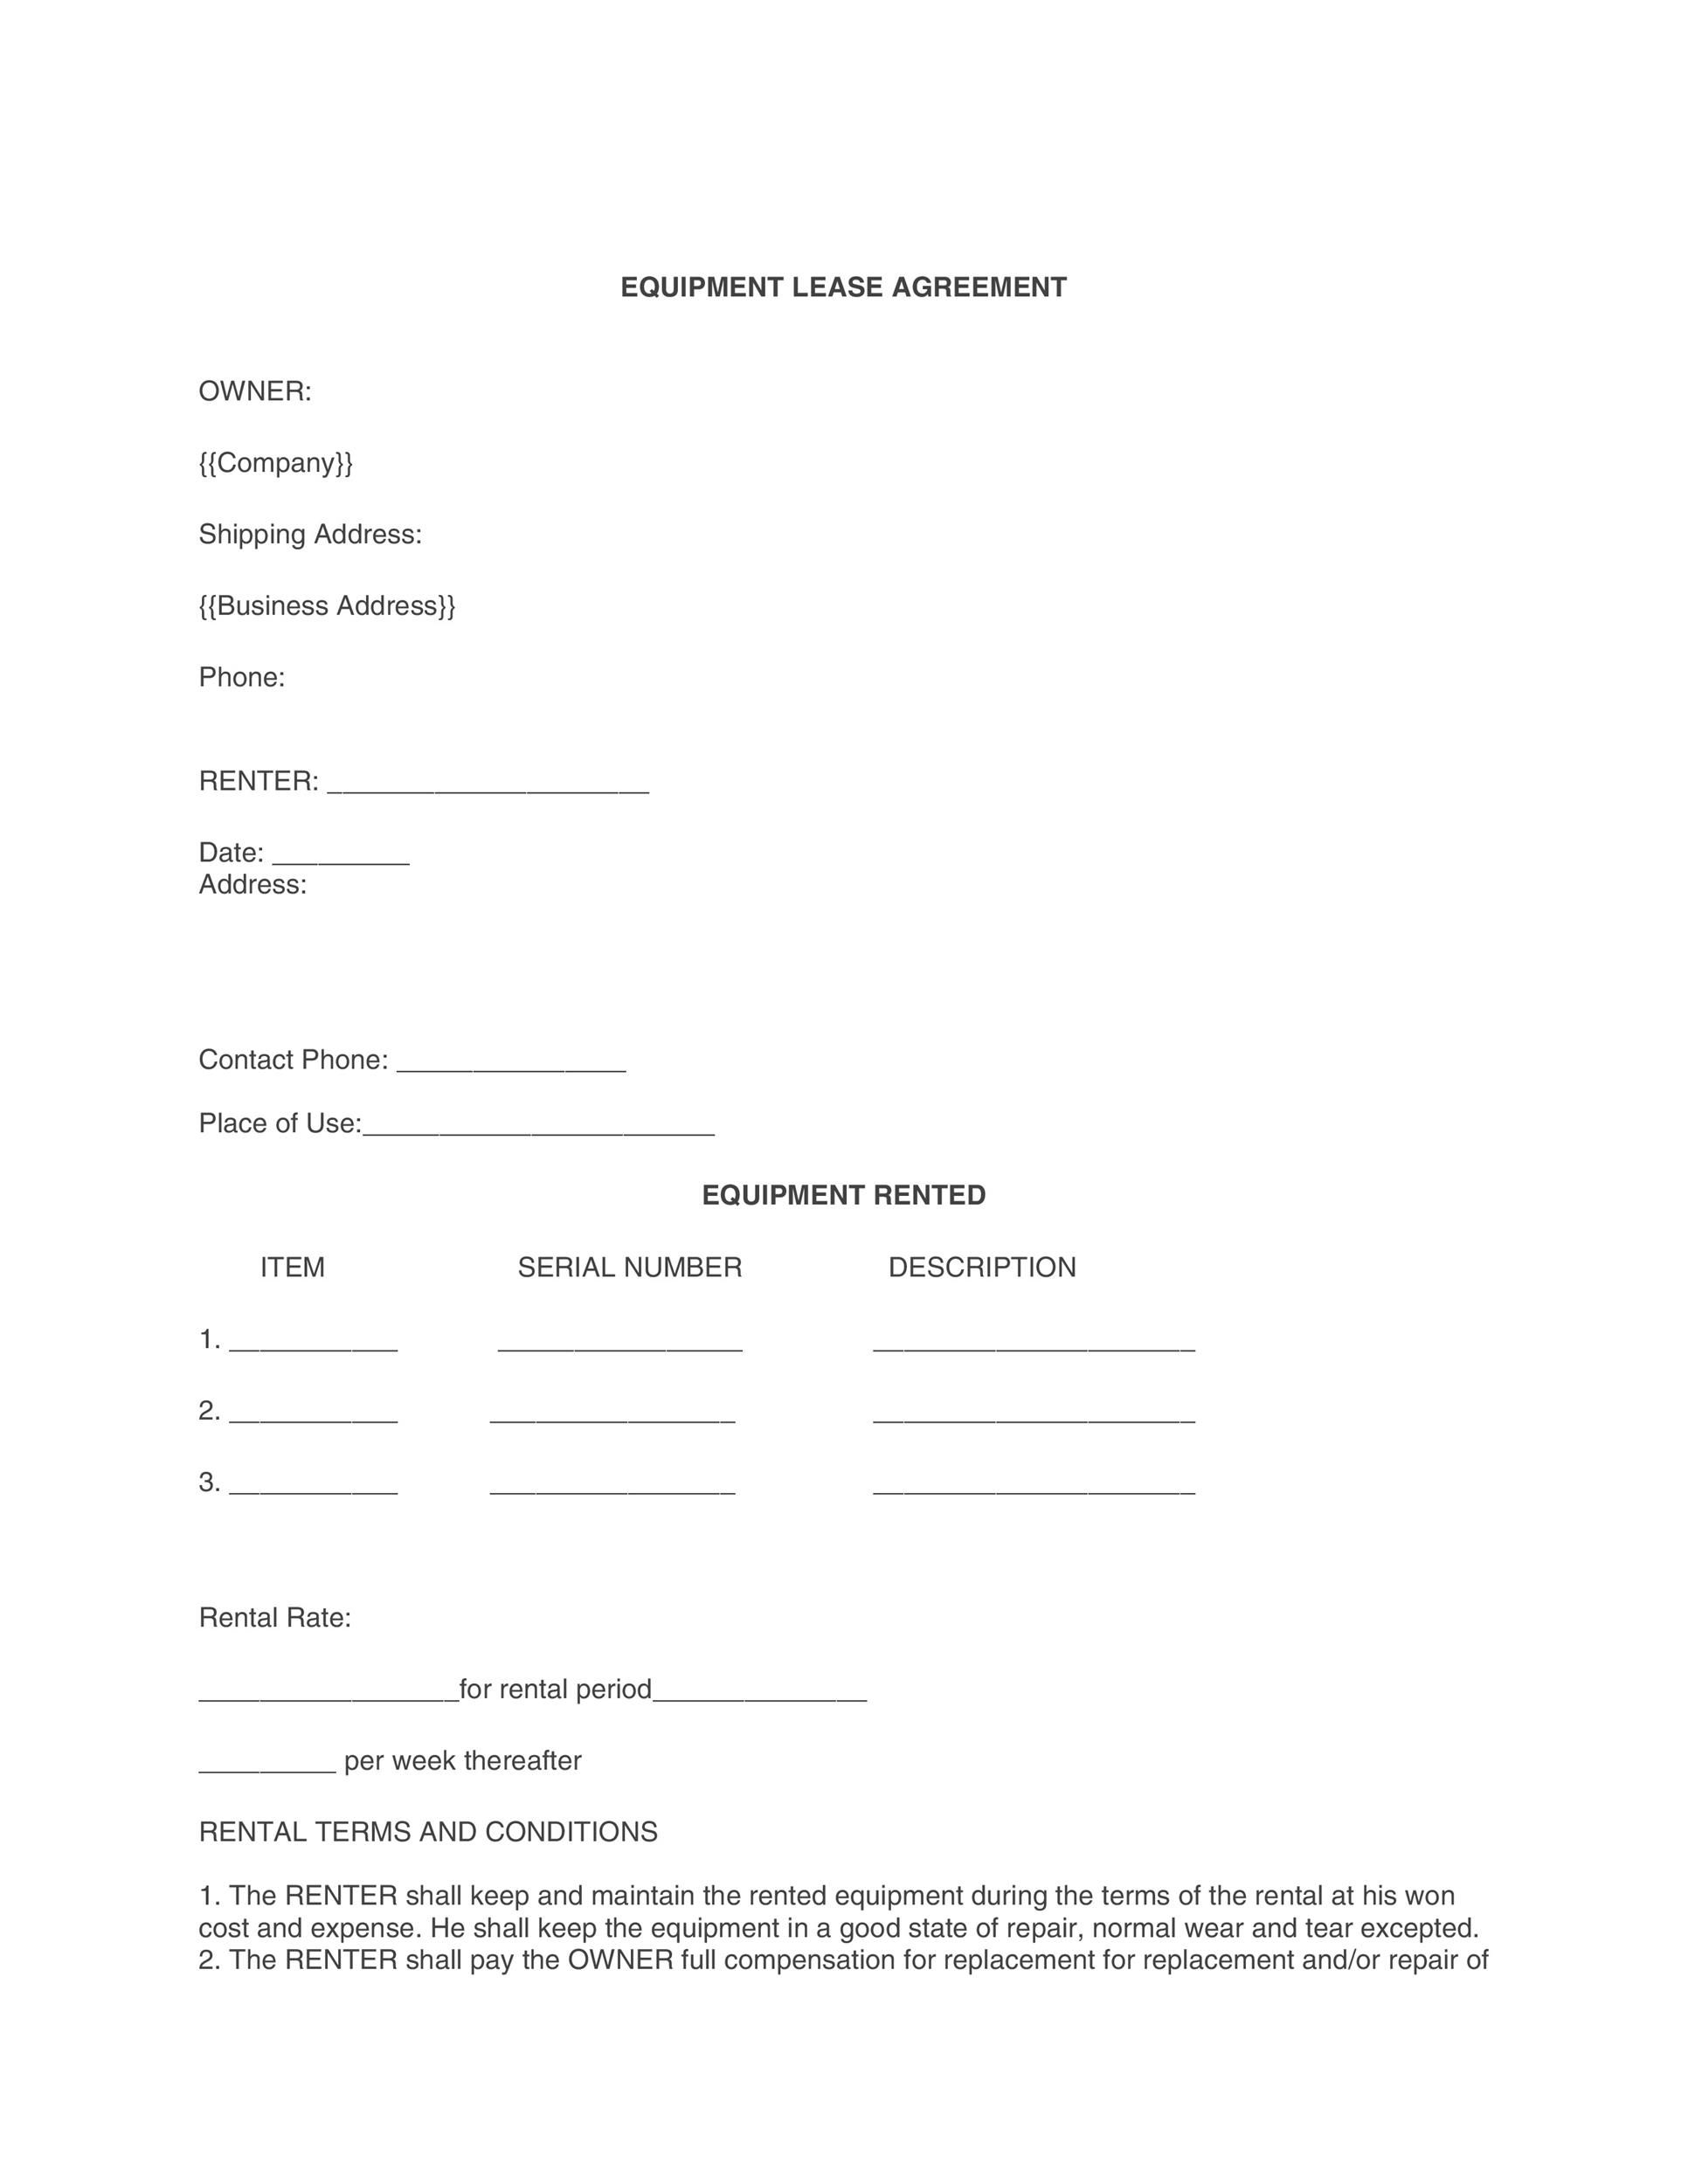 008 Remarkable Equipment Lease Contract Template Free Example  Agreement WordFull